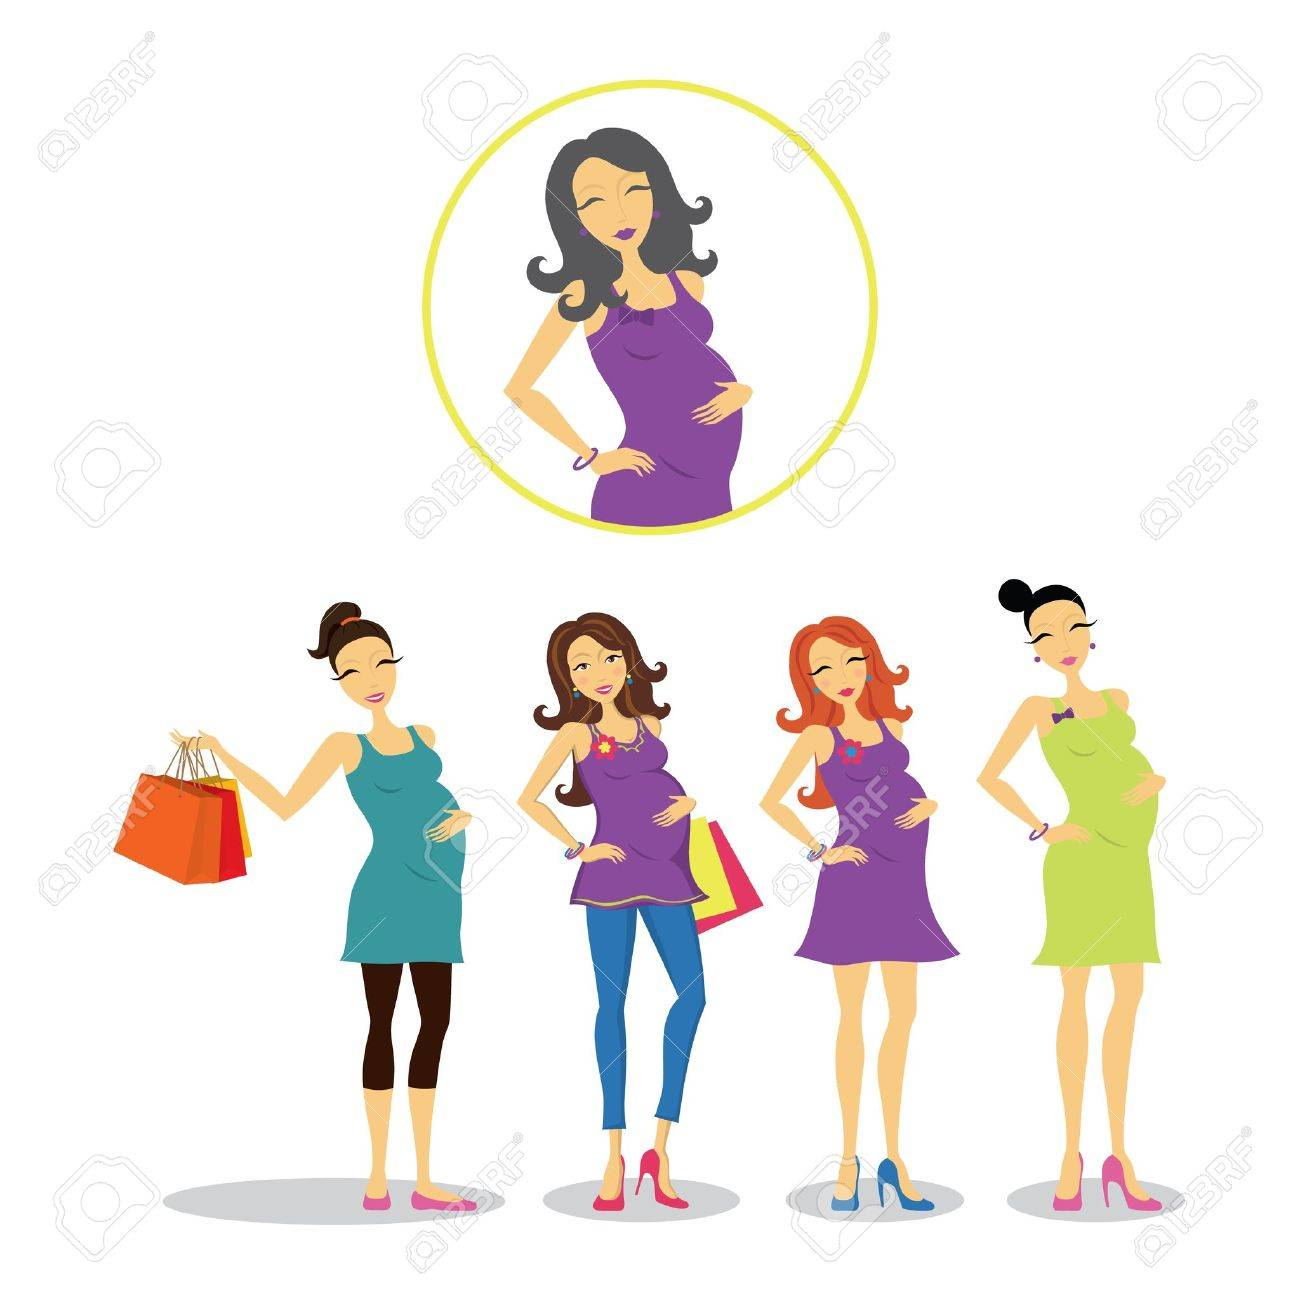 Pregnant women in different styles. Stock Vector - 11276998